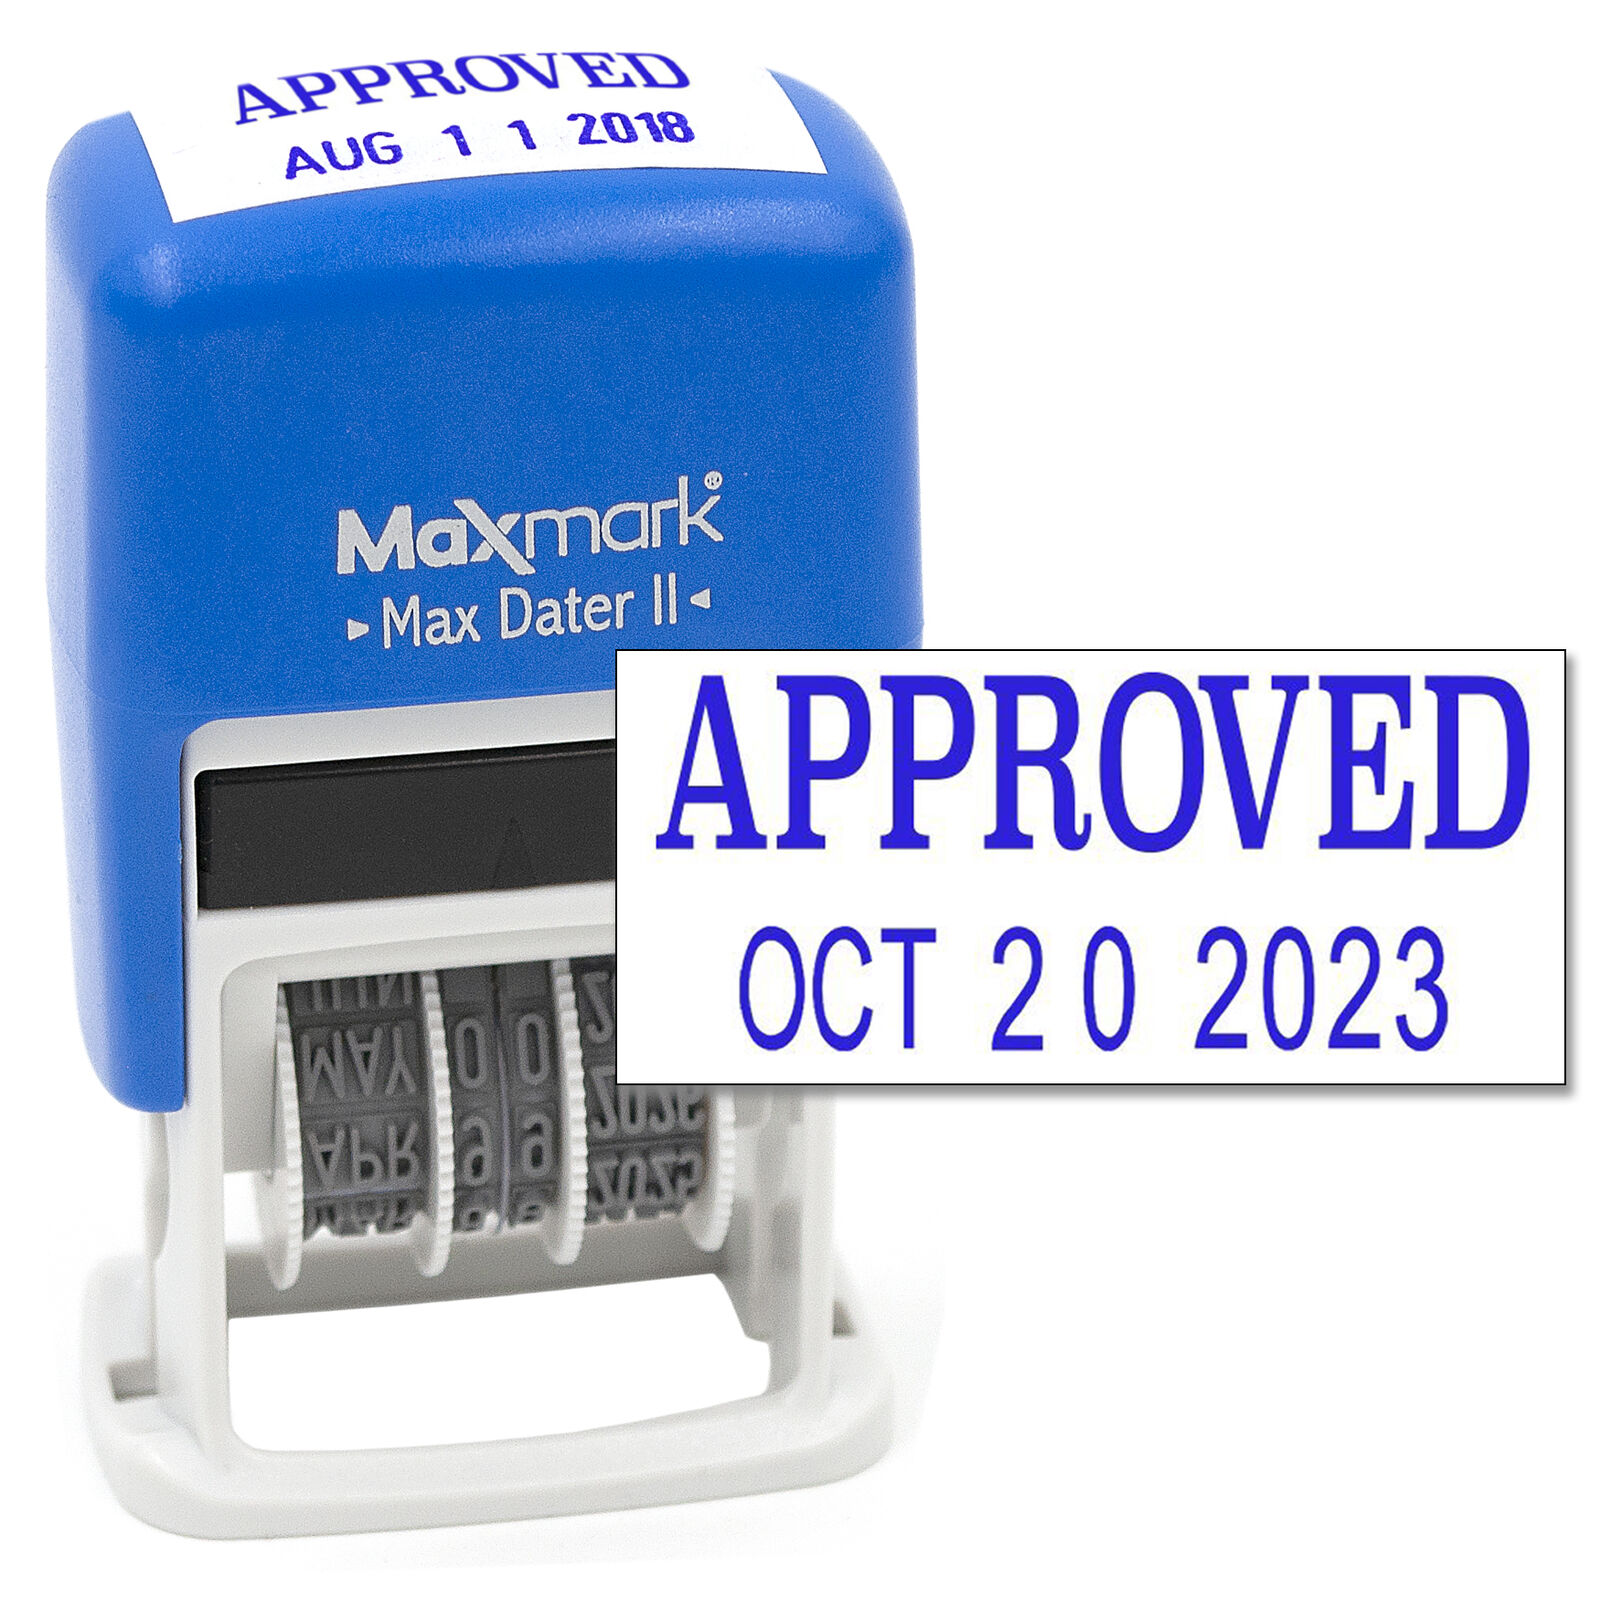 Printtoo Dater Stamp Self Inking with Approved /& Custom Text Line Office Stationery Date Rubber Stamp-Blue